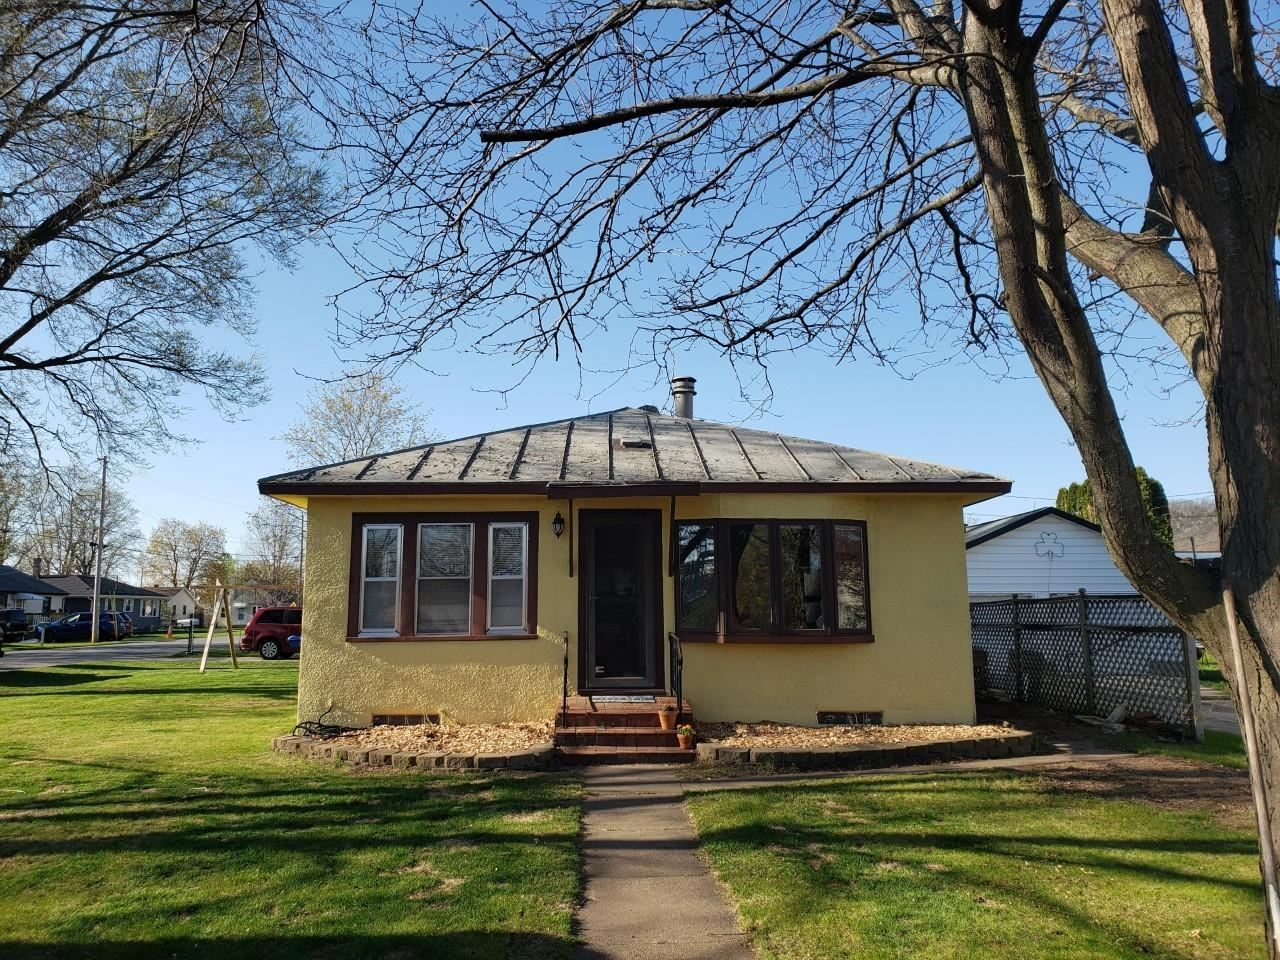 2701 Coulee Ave, Shelby, WI 54601 - MLS#: 1686971